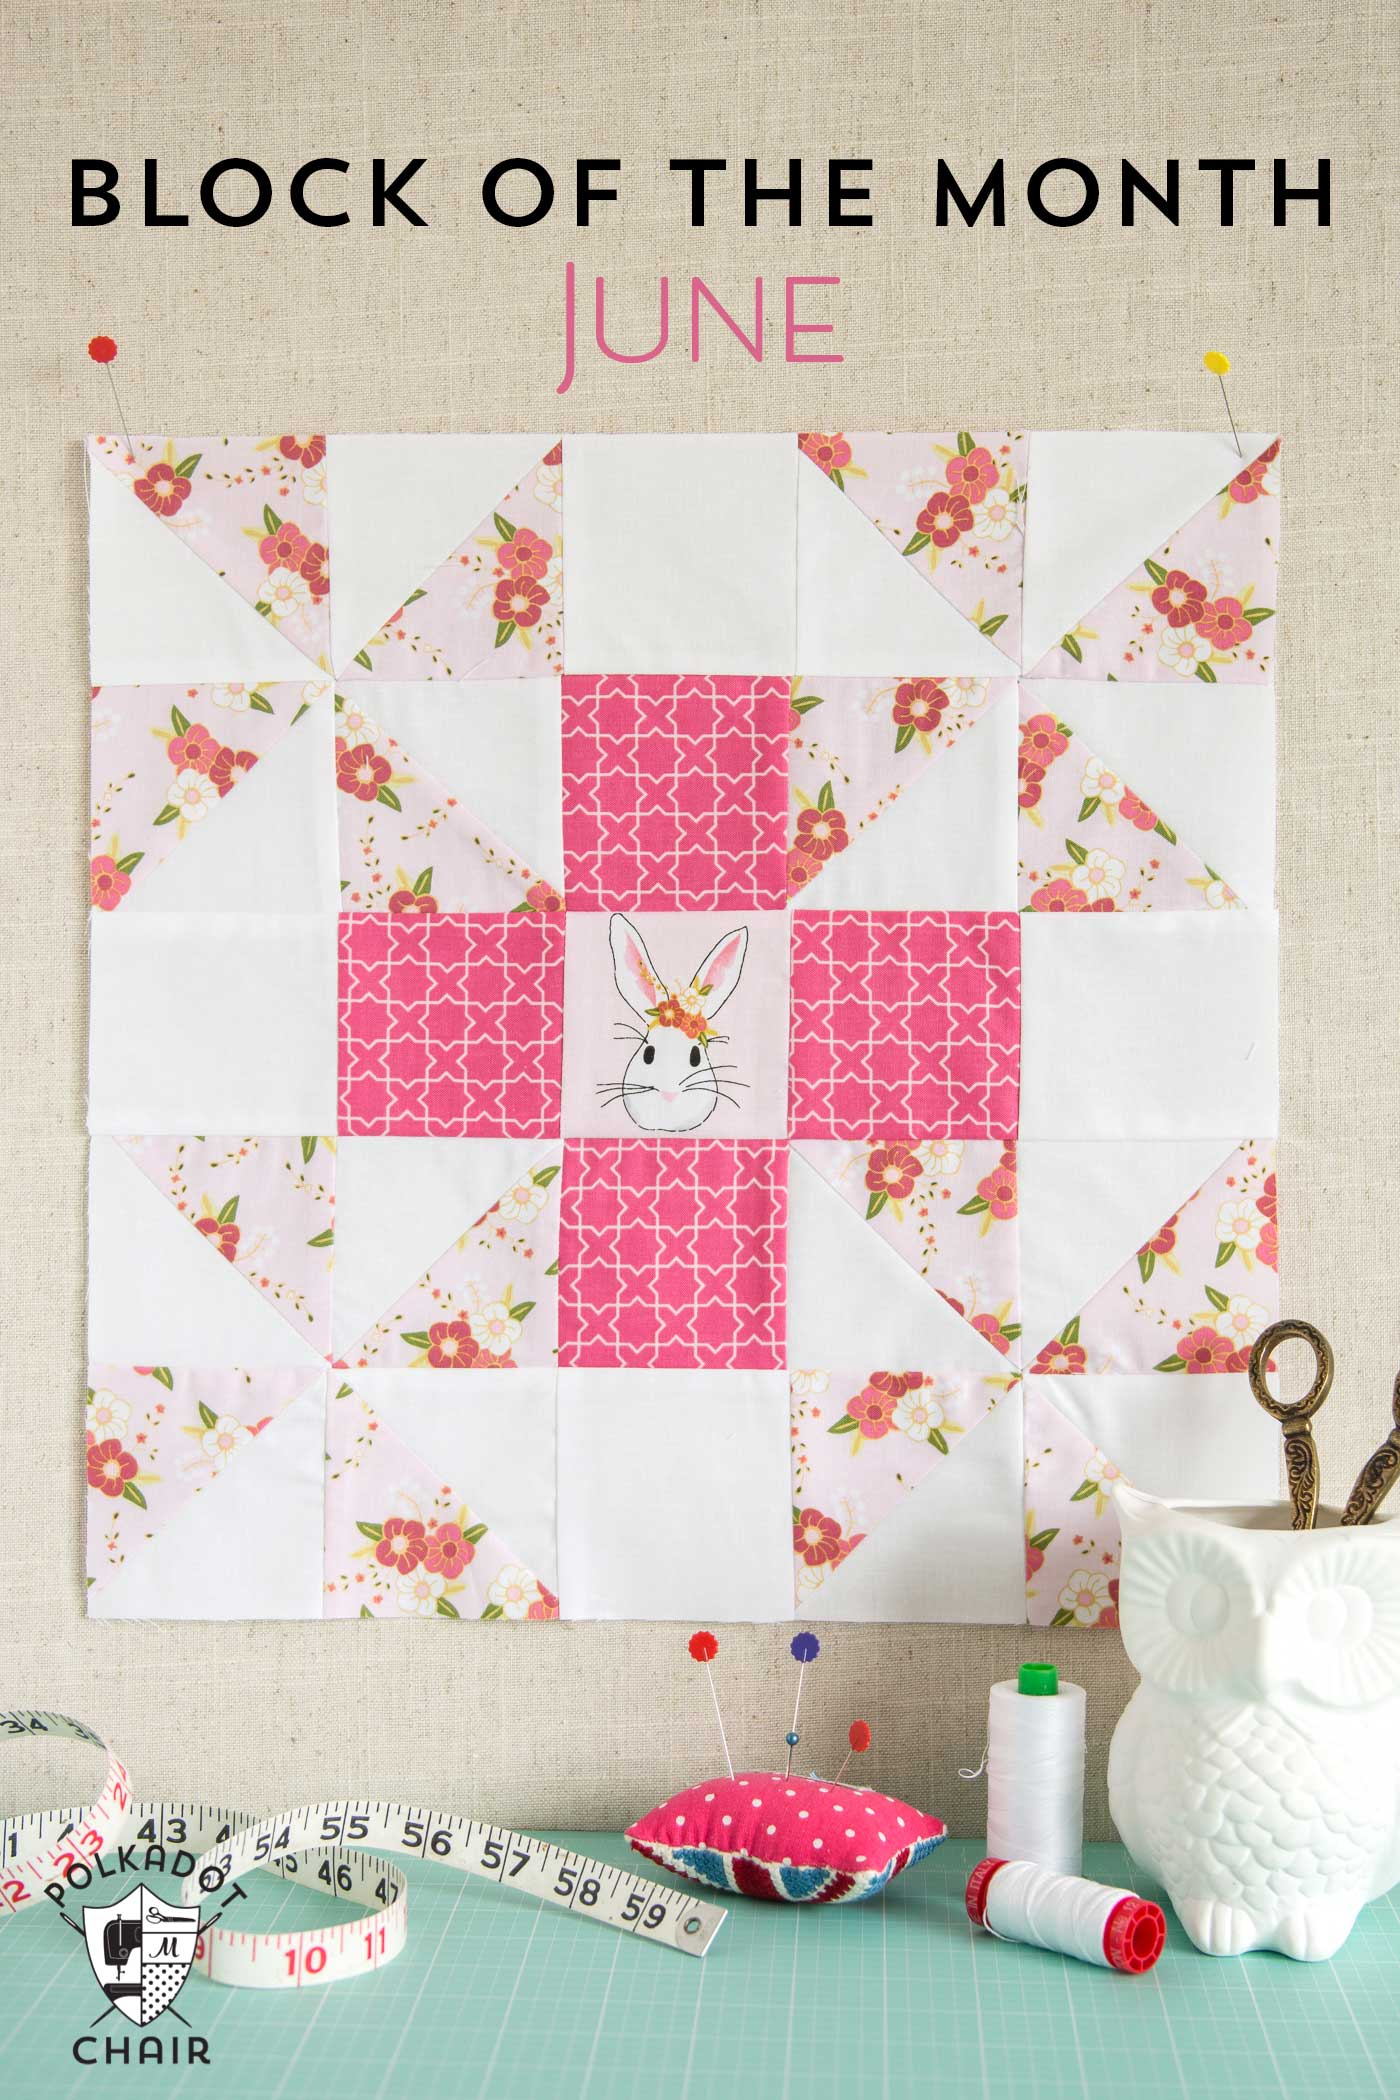 Quilt Patterns Block Of The Month : June Block of the Month; a Grandma s Favorite Quilt Block Tutorial - The Polka Dot Chair